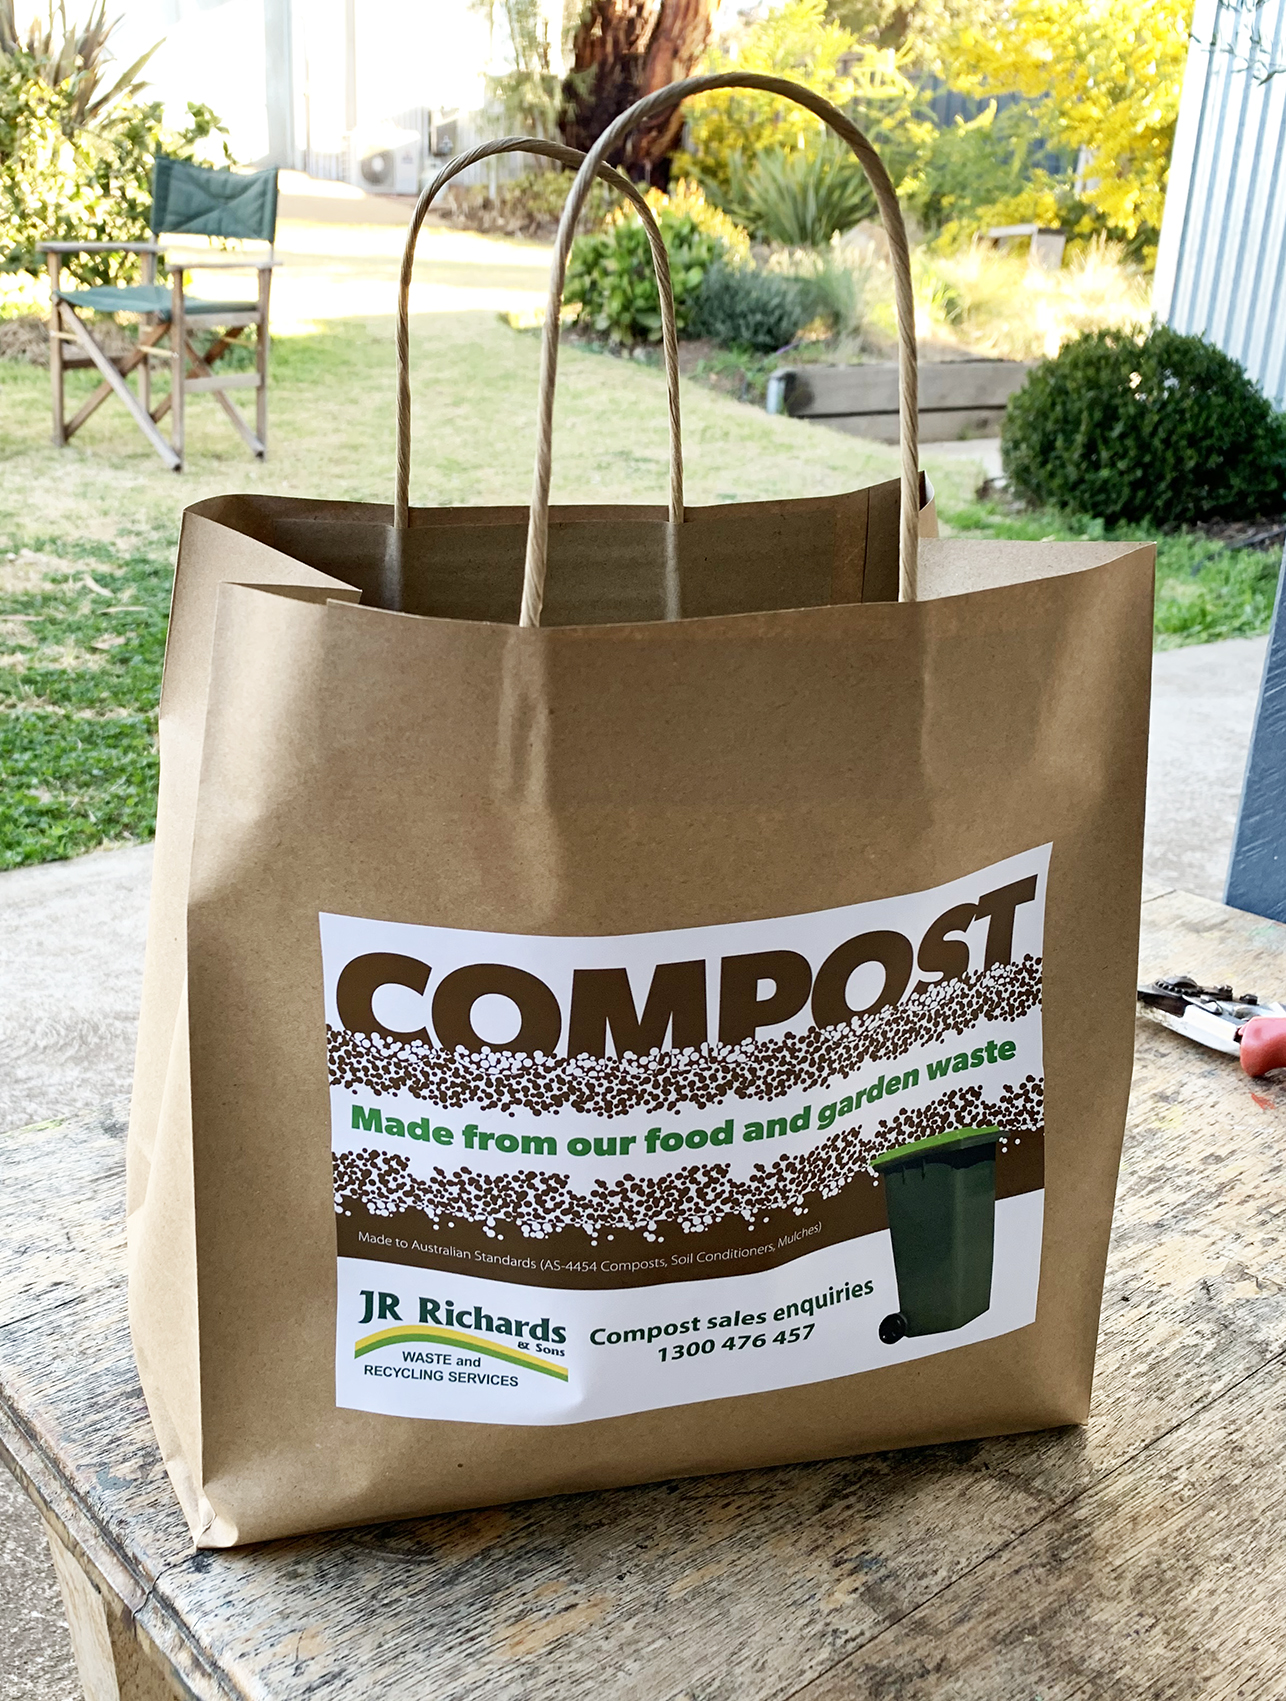 One of a suite of materials promoting compost produced from local waste